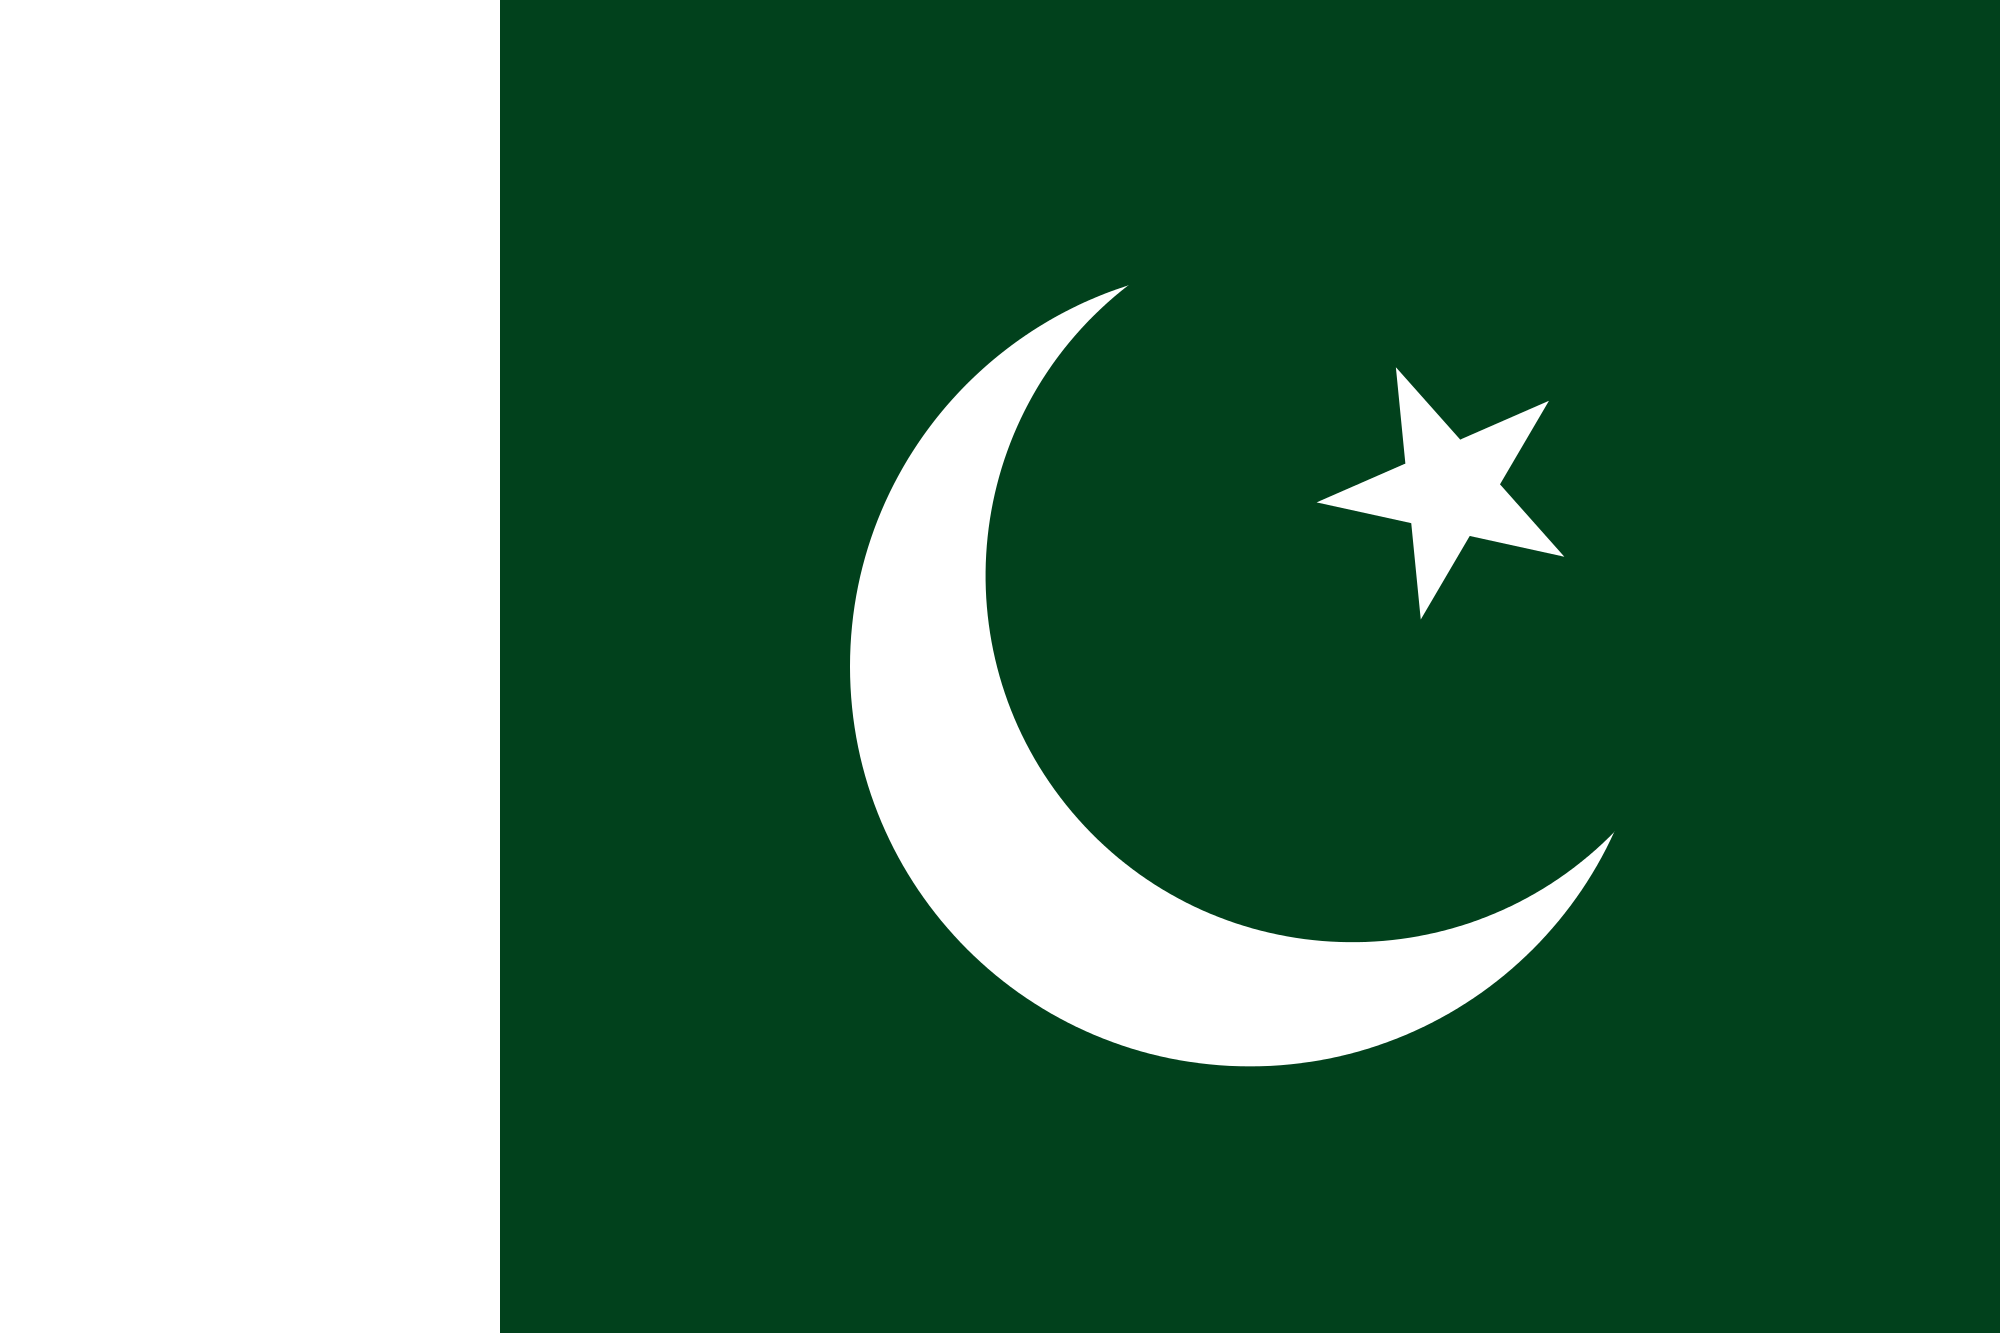 Pakistan Day: Let's all be thankful